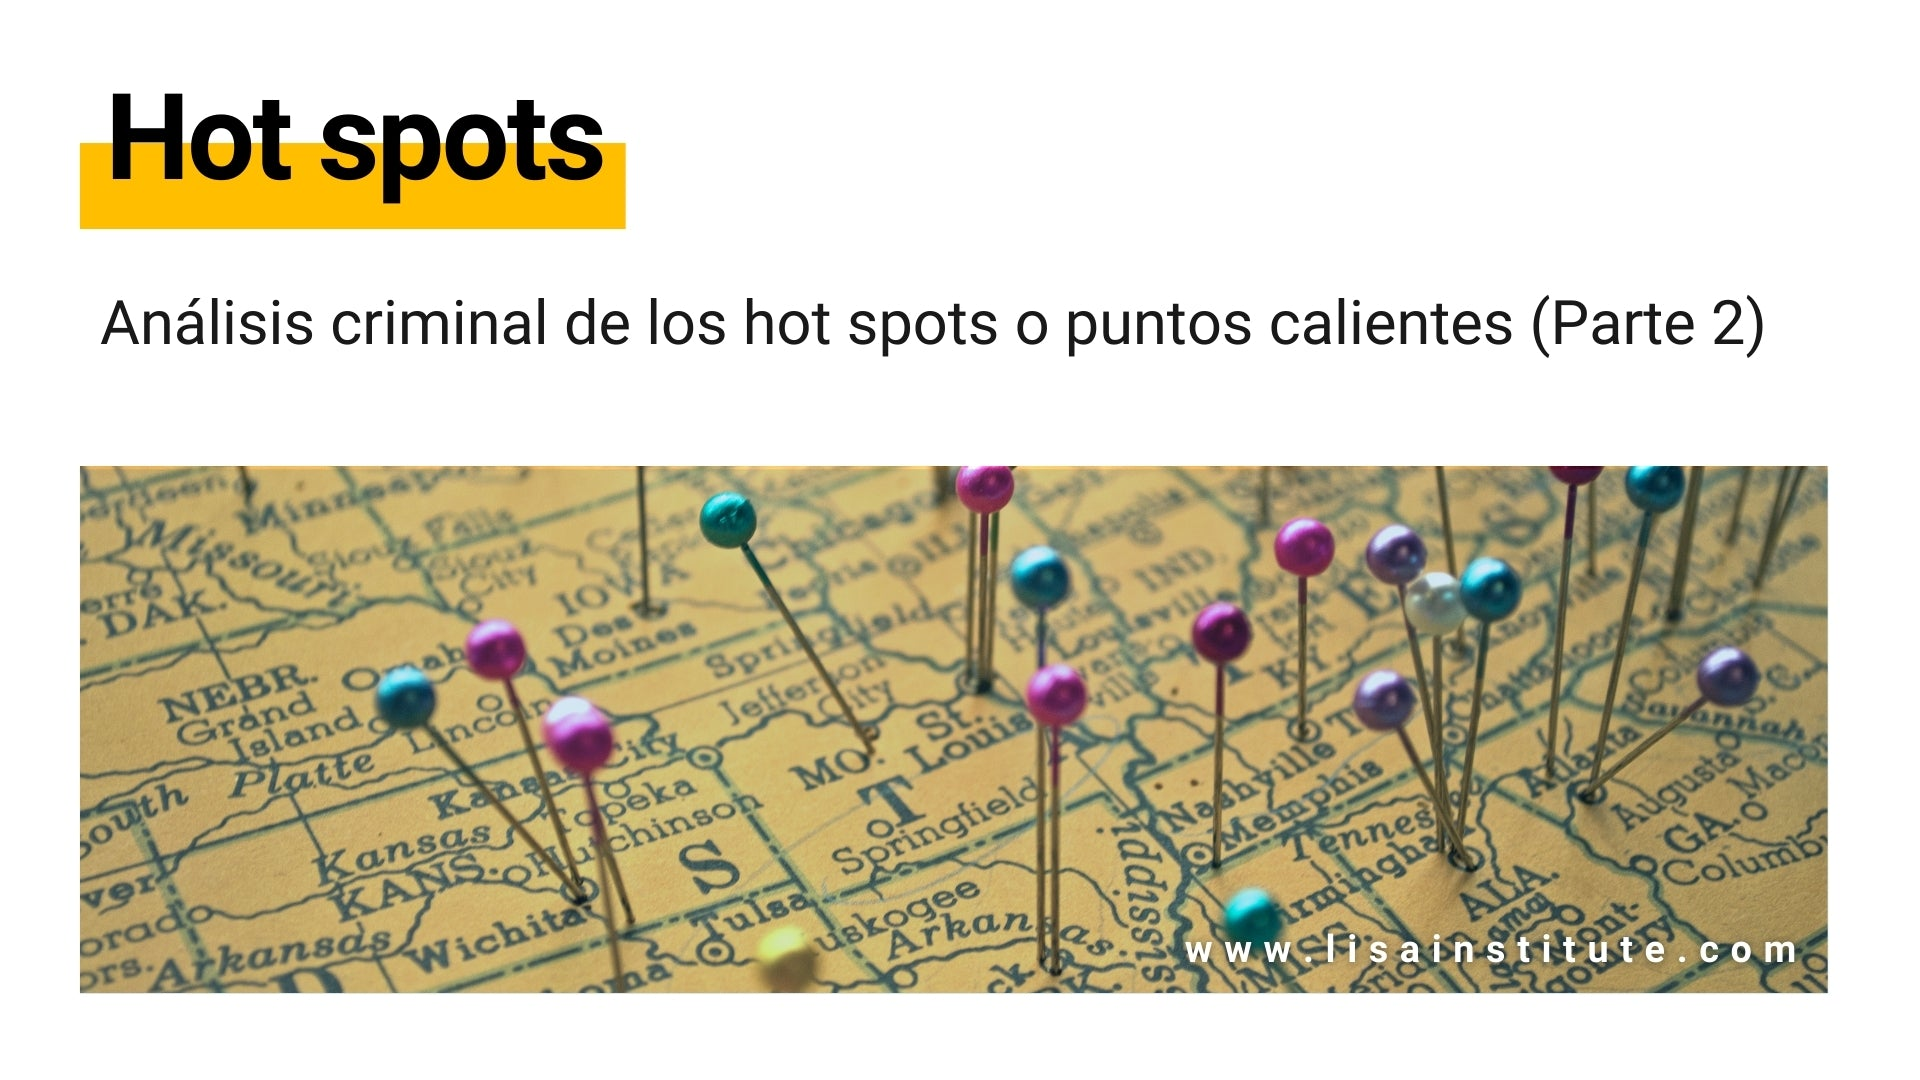 Análisis criminal de los hot spots o puntos calientes (Parte 2) - LISA Institute